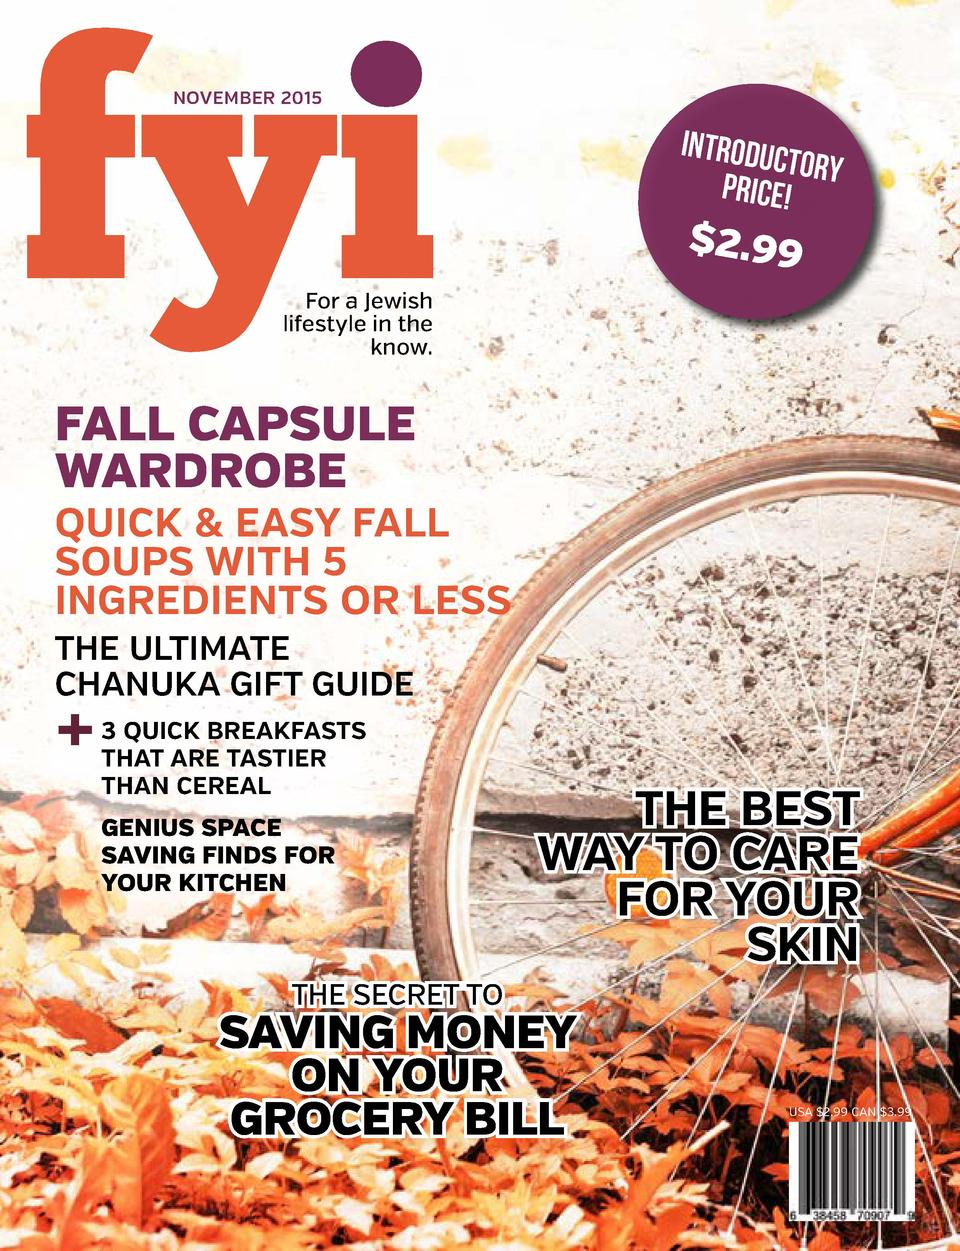 NOVEMBER 2015  INTRODUC TORY PRICE    2.99  For a Jewish lifestyle in the know.  FALL CAPSULE THE WARDROBE SECRET TO FALL ...